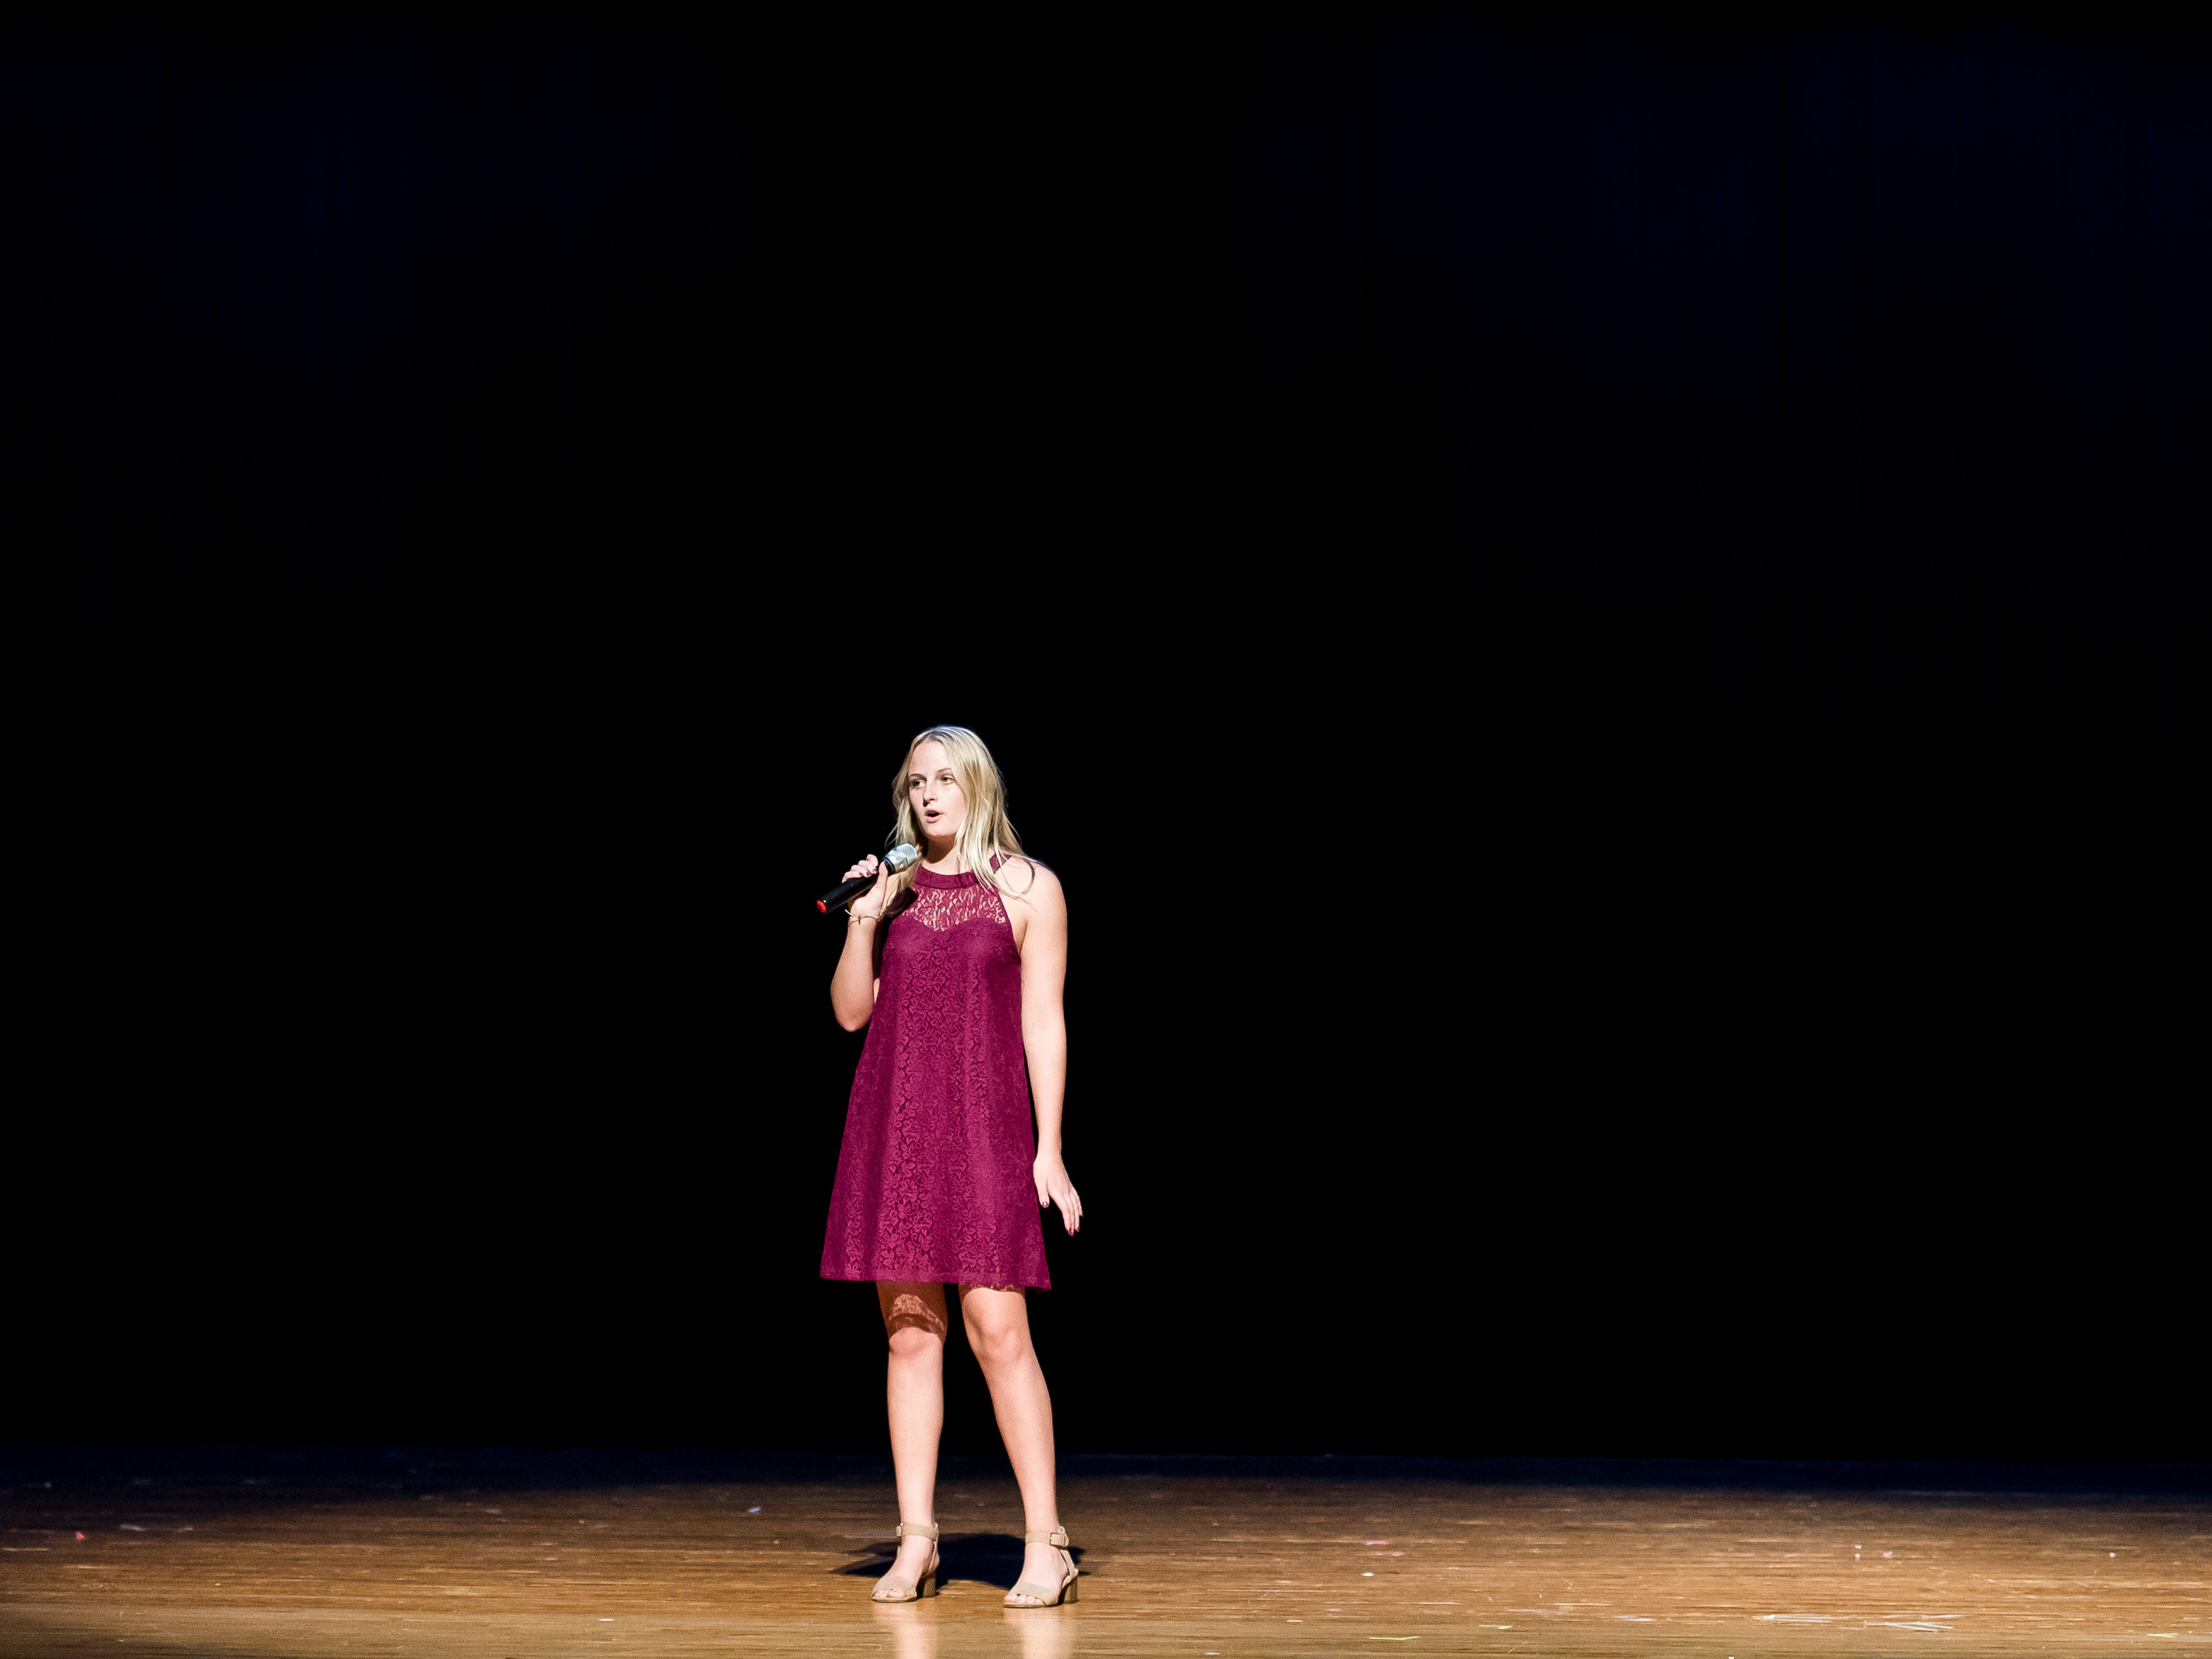 South Western's Sara Green sings during a rehearsal session for Miss Hanover Area pageant at New Oxford High School on Oct. 17, 2018.